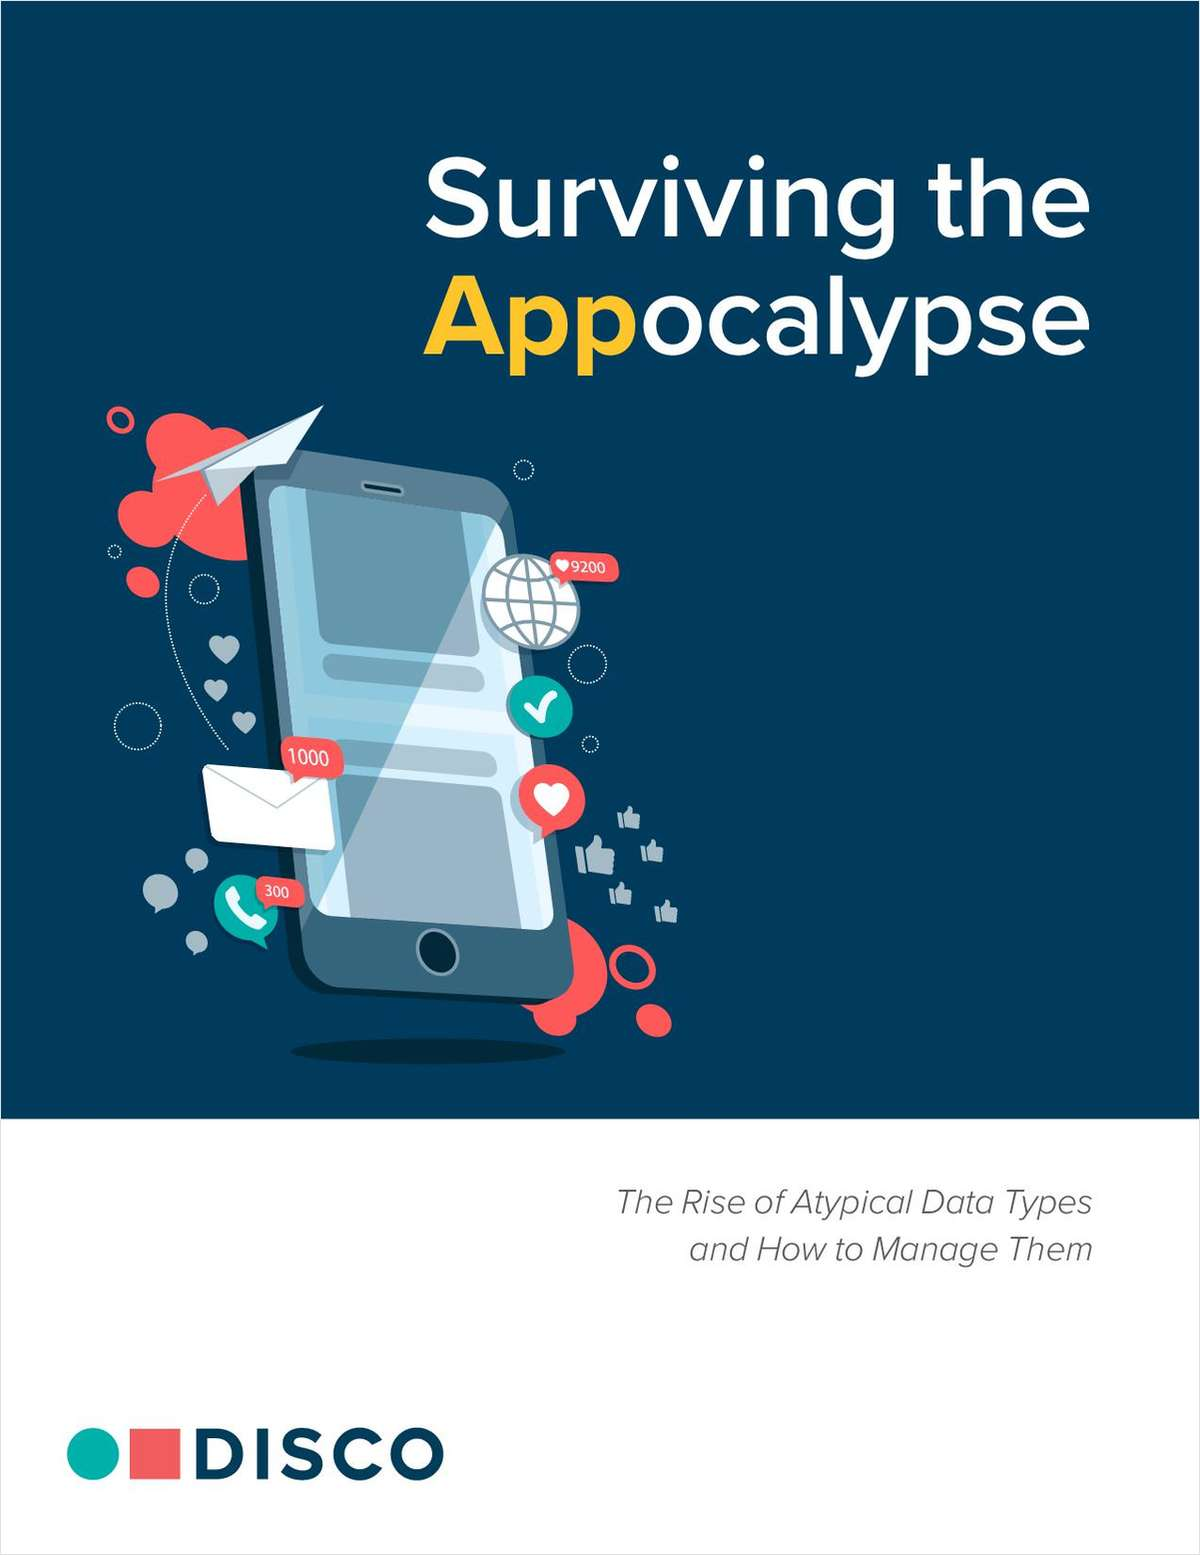 Surviving the App-ocalypse: The Rise of Atypical Data Types and How to Manage Them